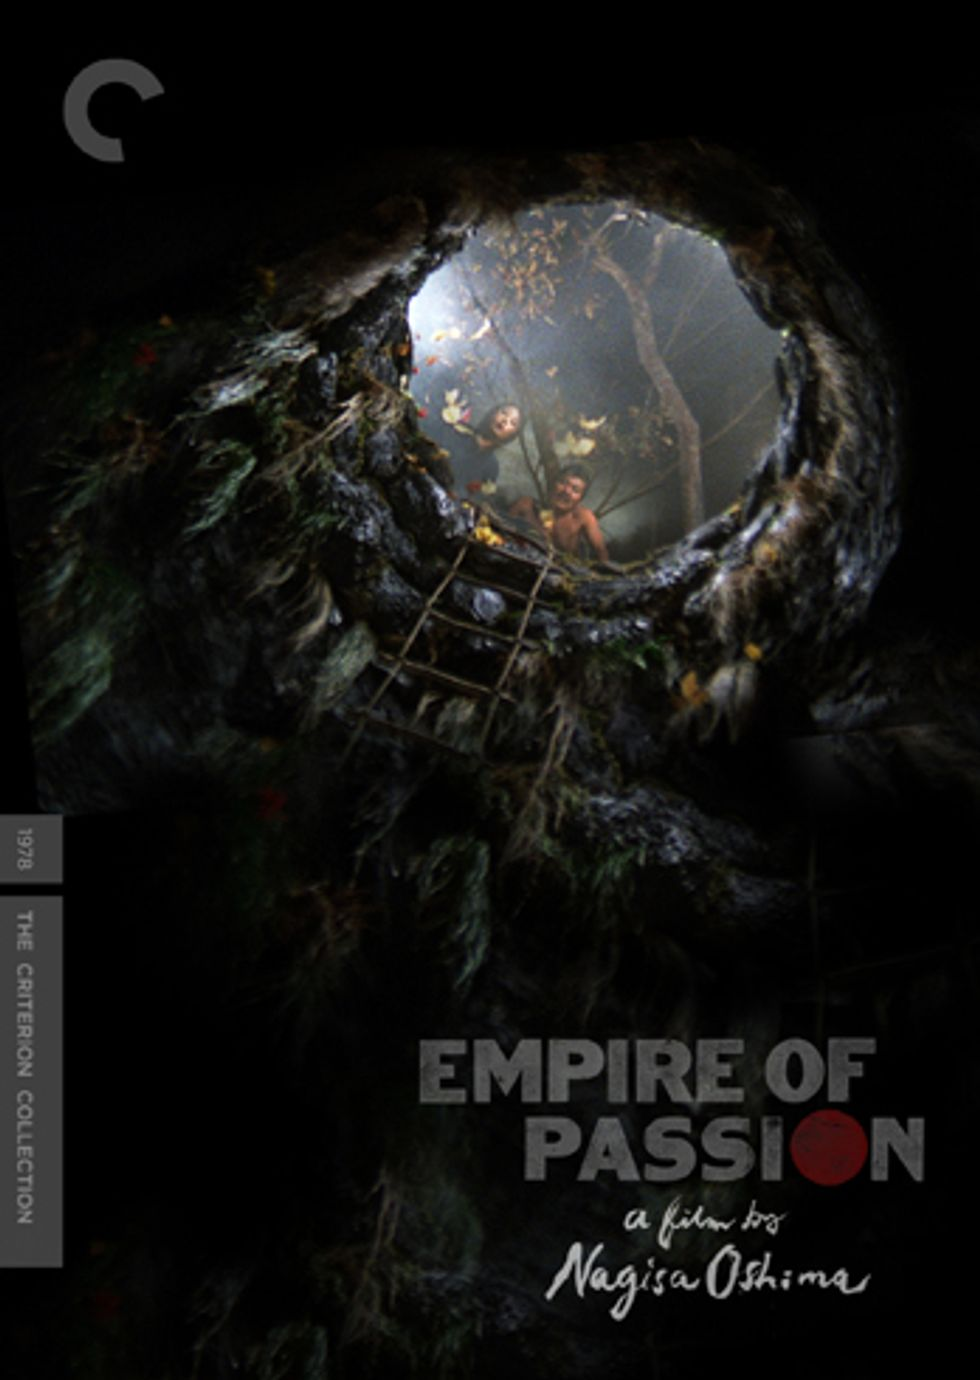 In the Realm of the Senses and Empire of Passion Out On Criterion